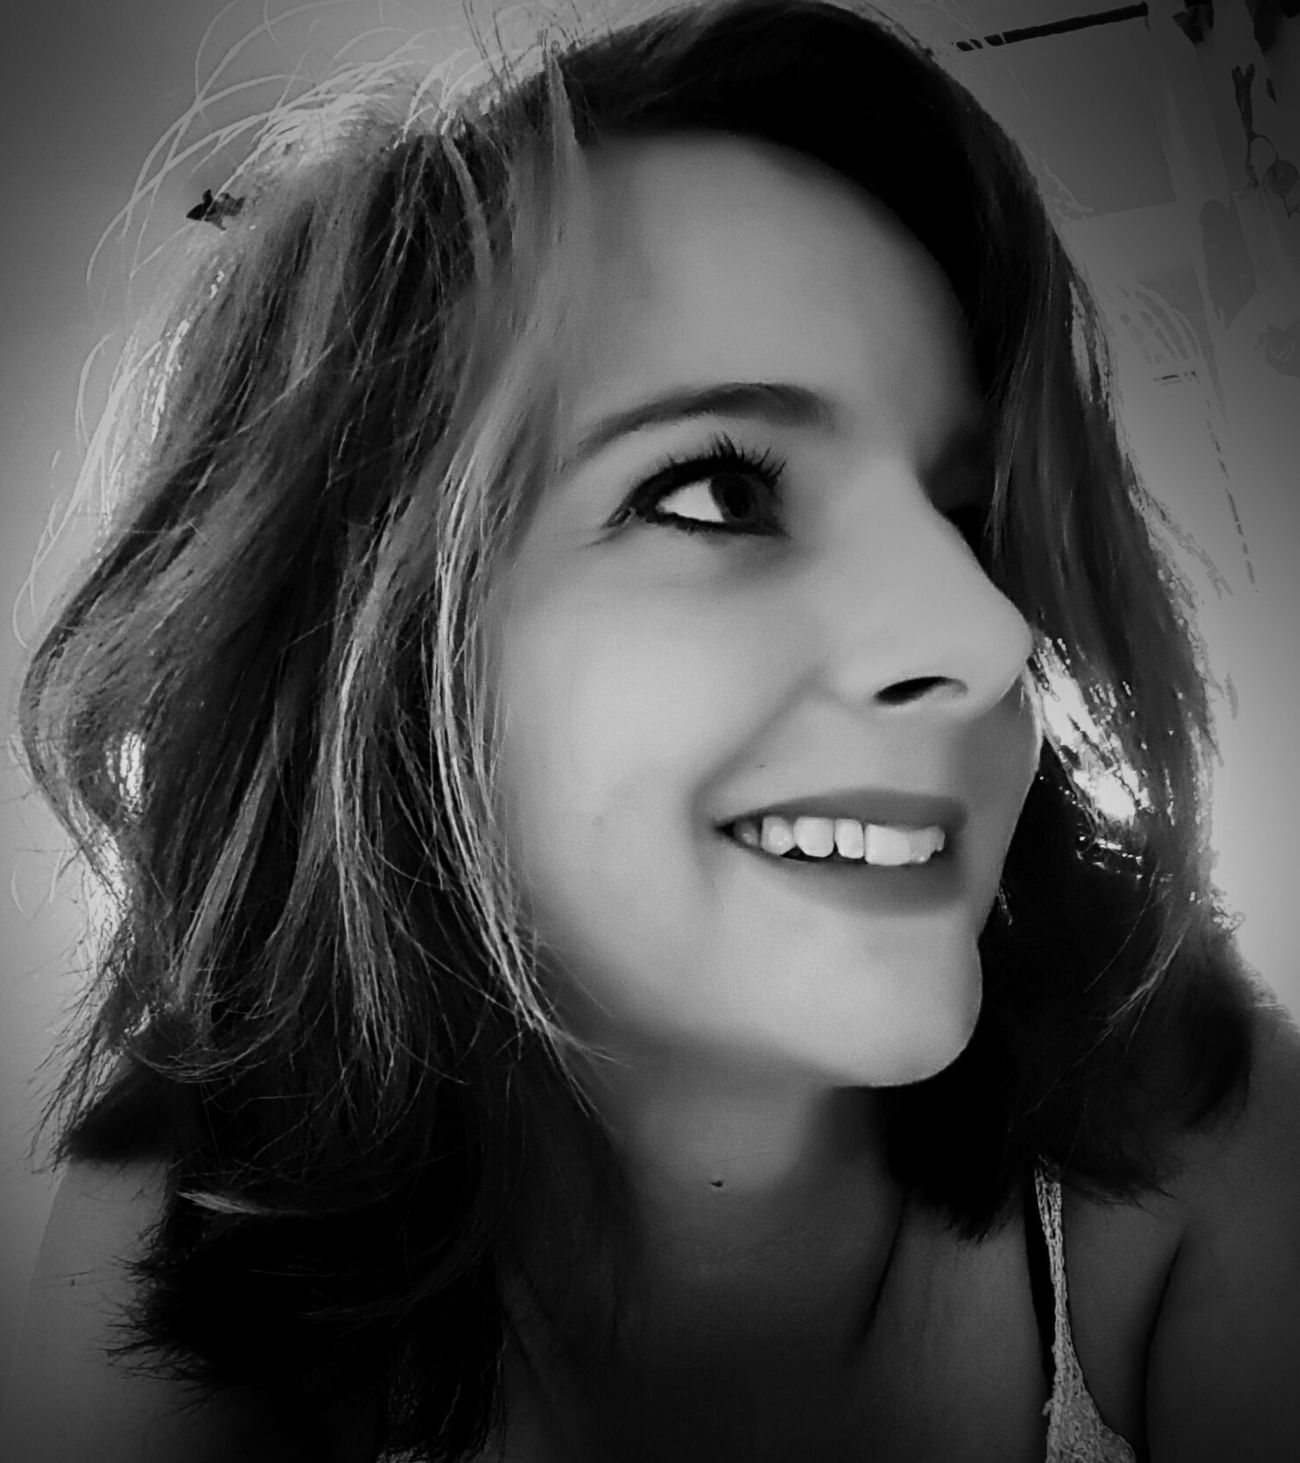 Portrait Looking At Camera Headshot Human Face Real People Smiling Only Women One Person Adult Adults Only People Human Body Part Eye4photography  Taking Photos EyeEm Gallery Eeyem Photography Blackandwhite Blackandwhite Photography Black And White Portrait Woman Portrait Self Potrait Myself